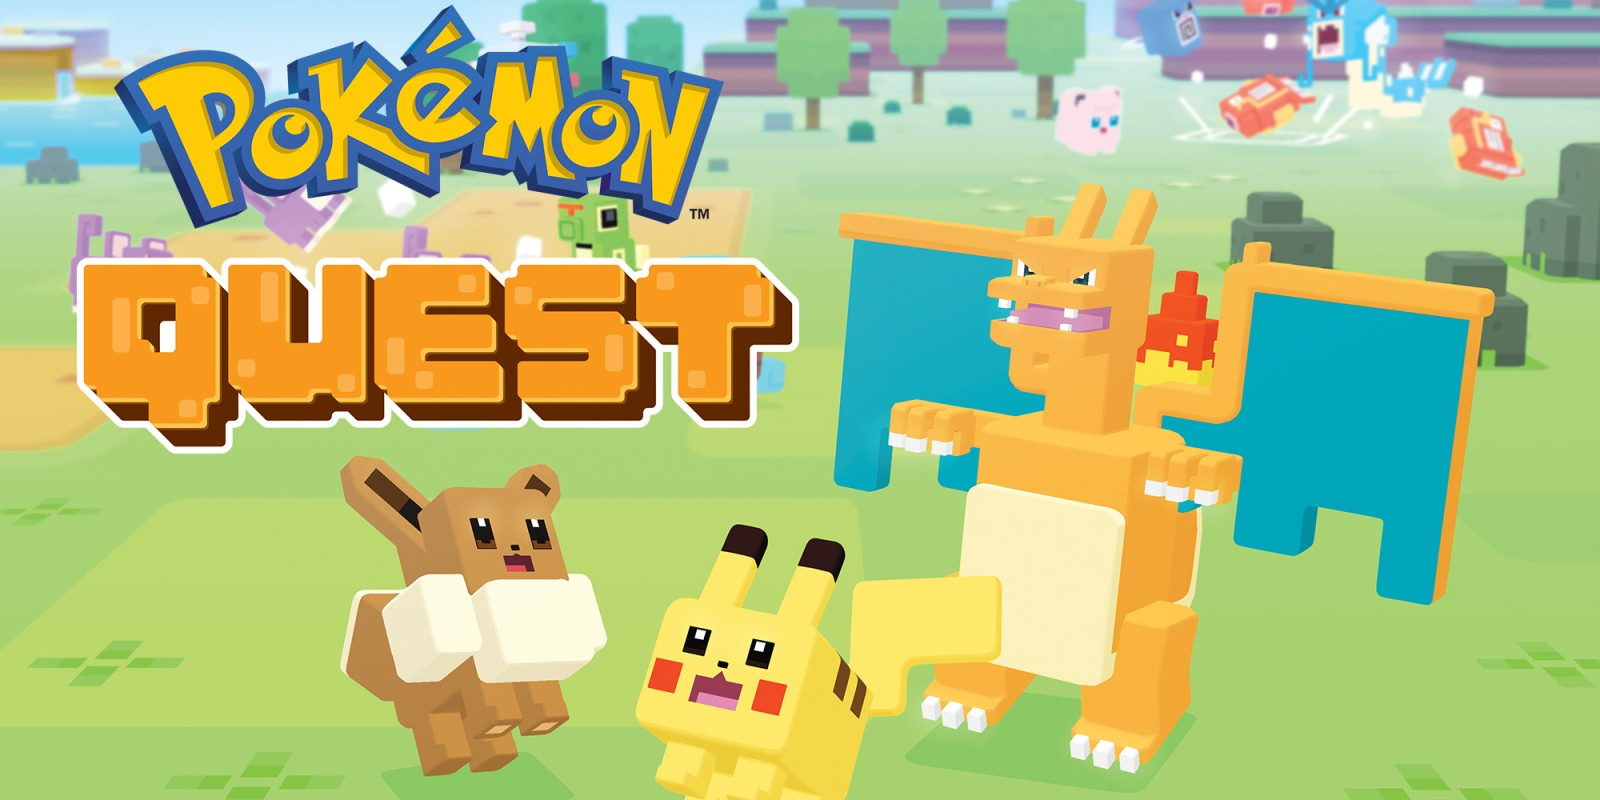 Pokemon Quest Programas Descargables Nintendo Switch Juegos